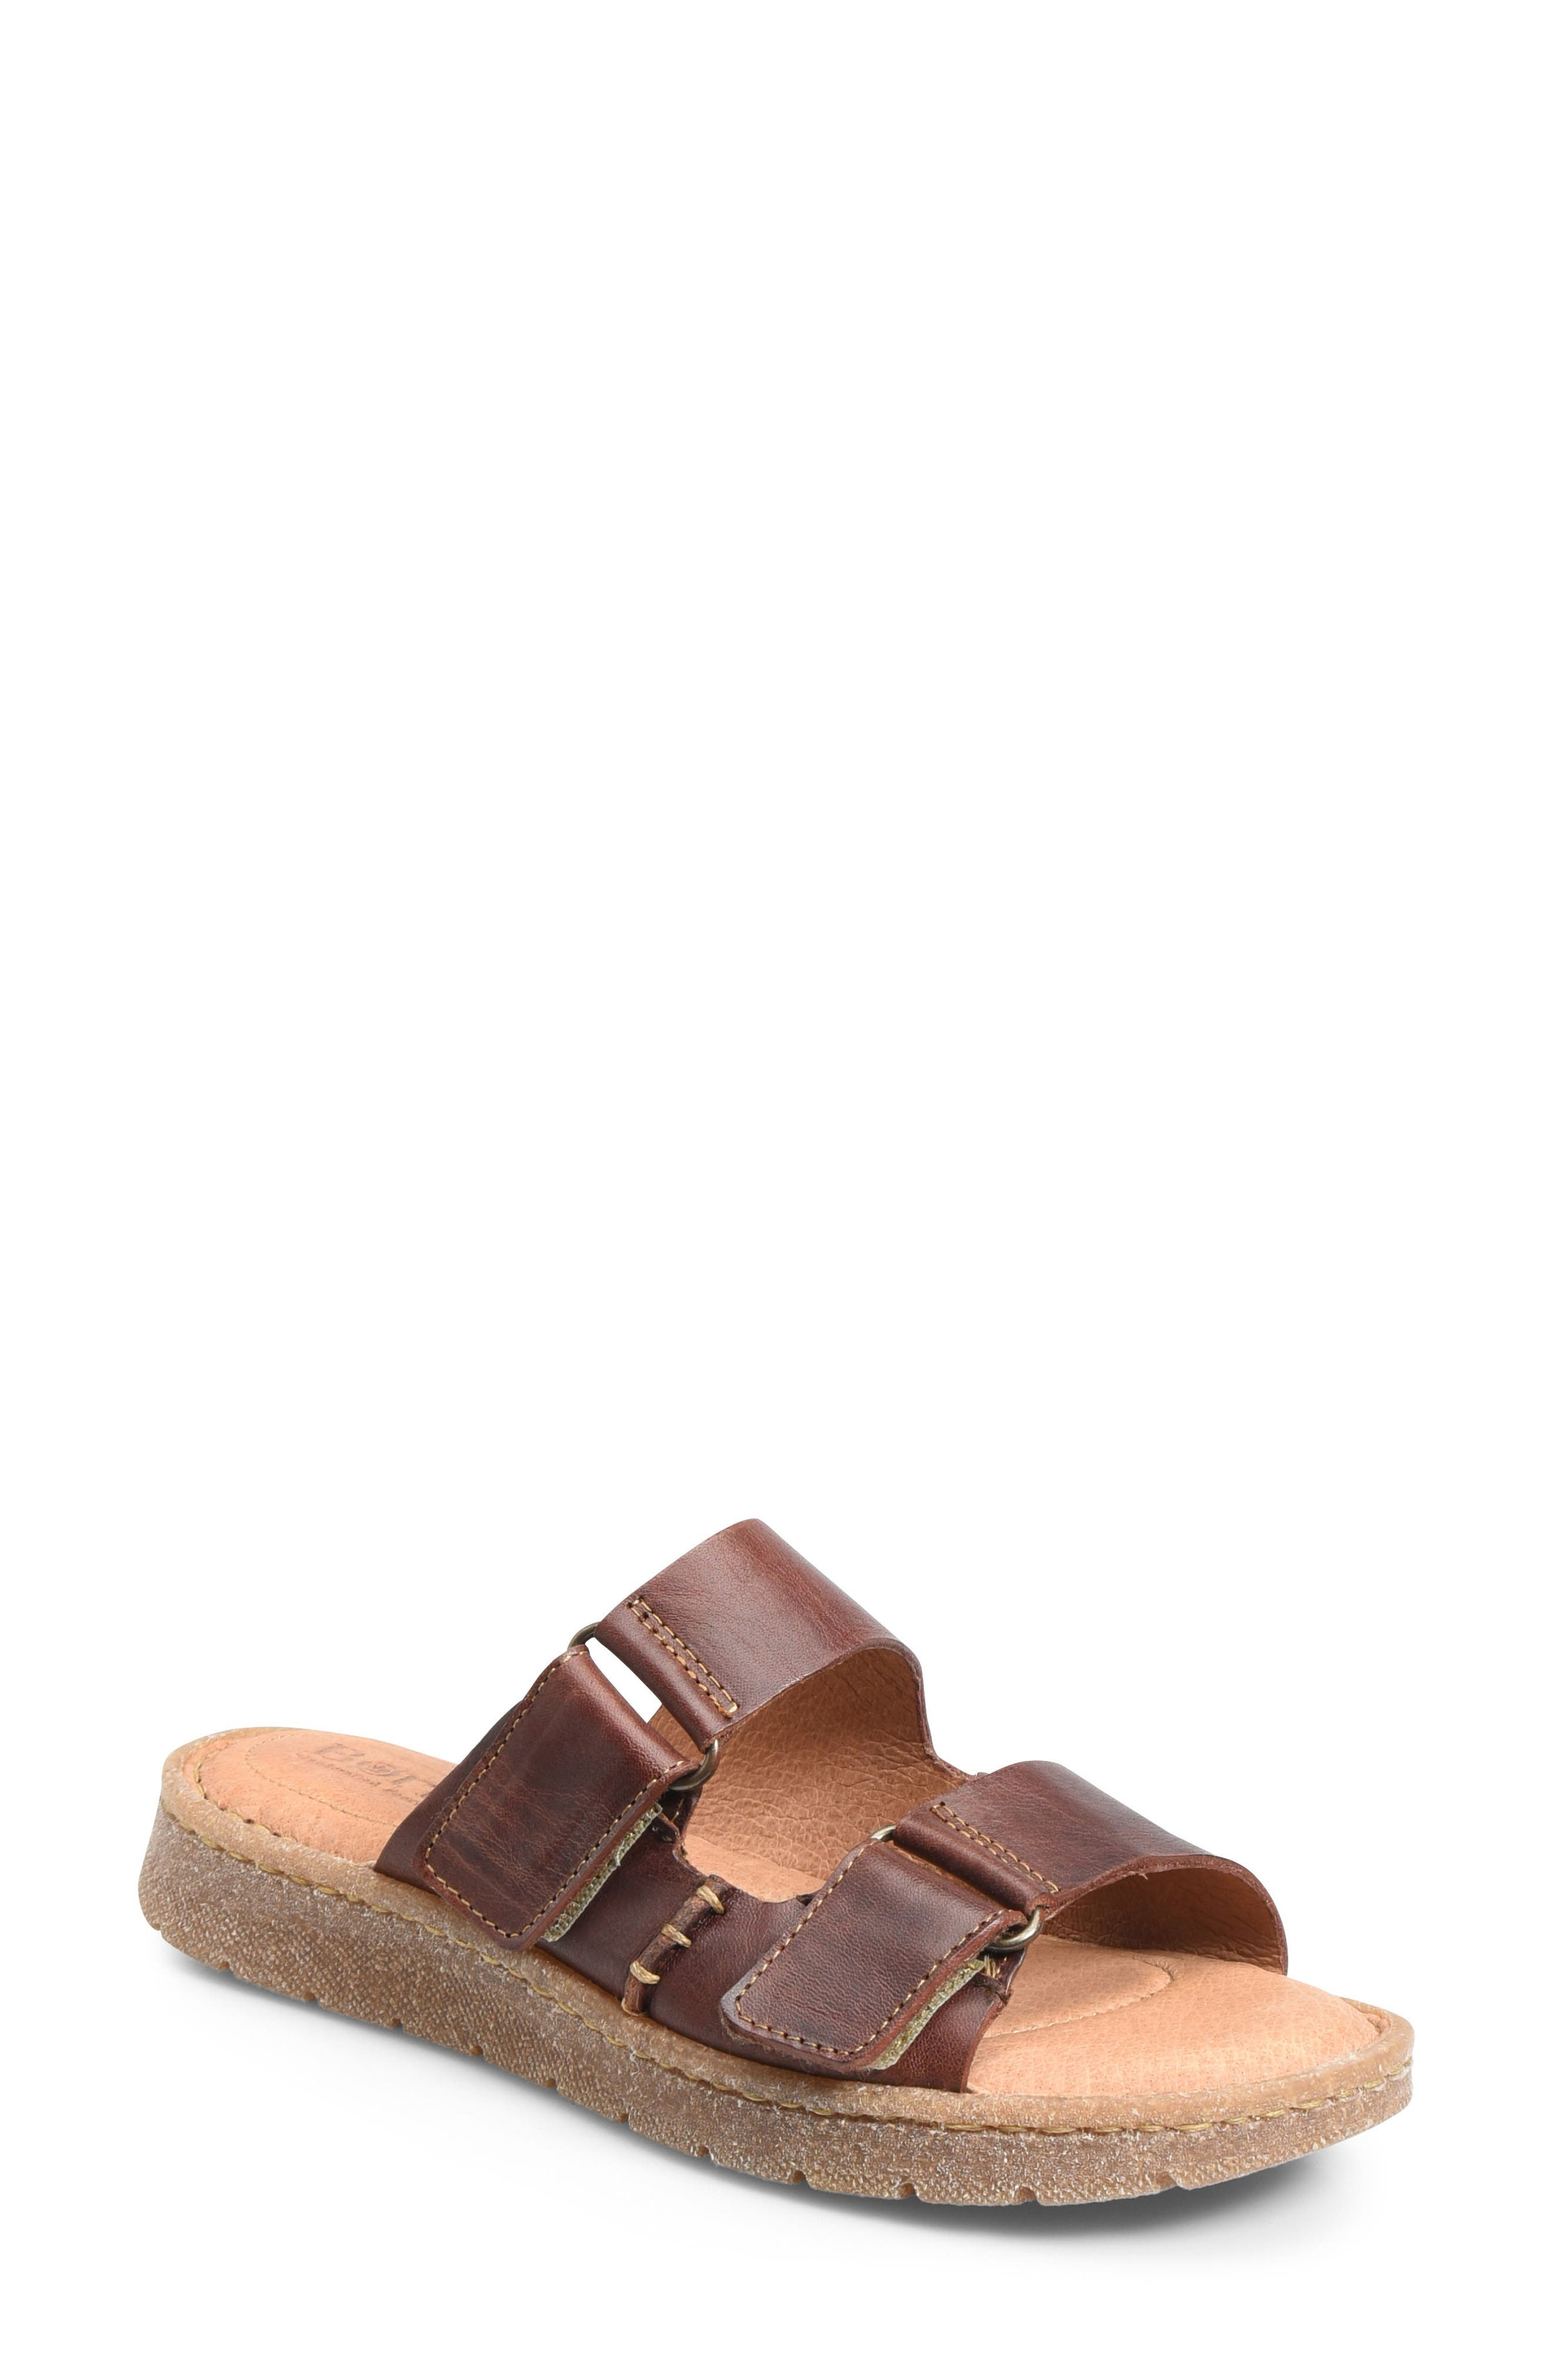 Dominica Sandal,                             Main thumbnail 1, color,                             Rust Leather